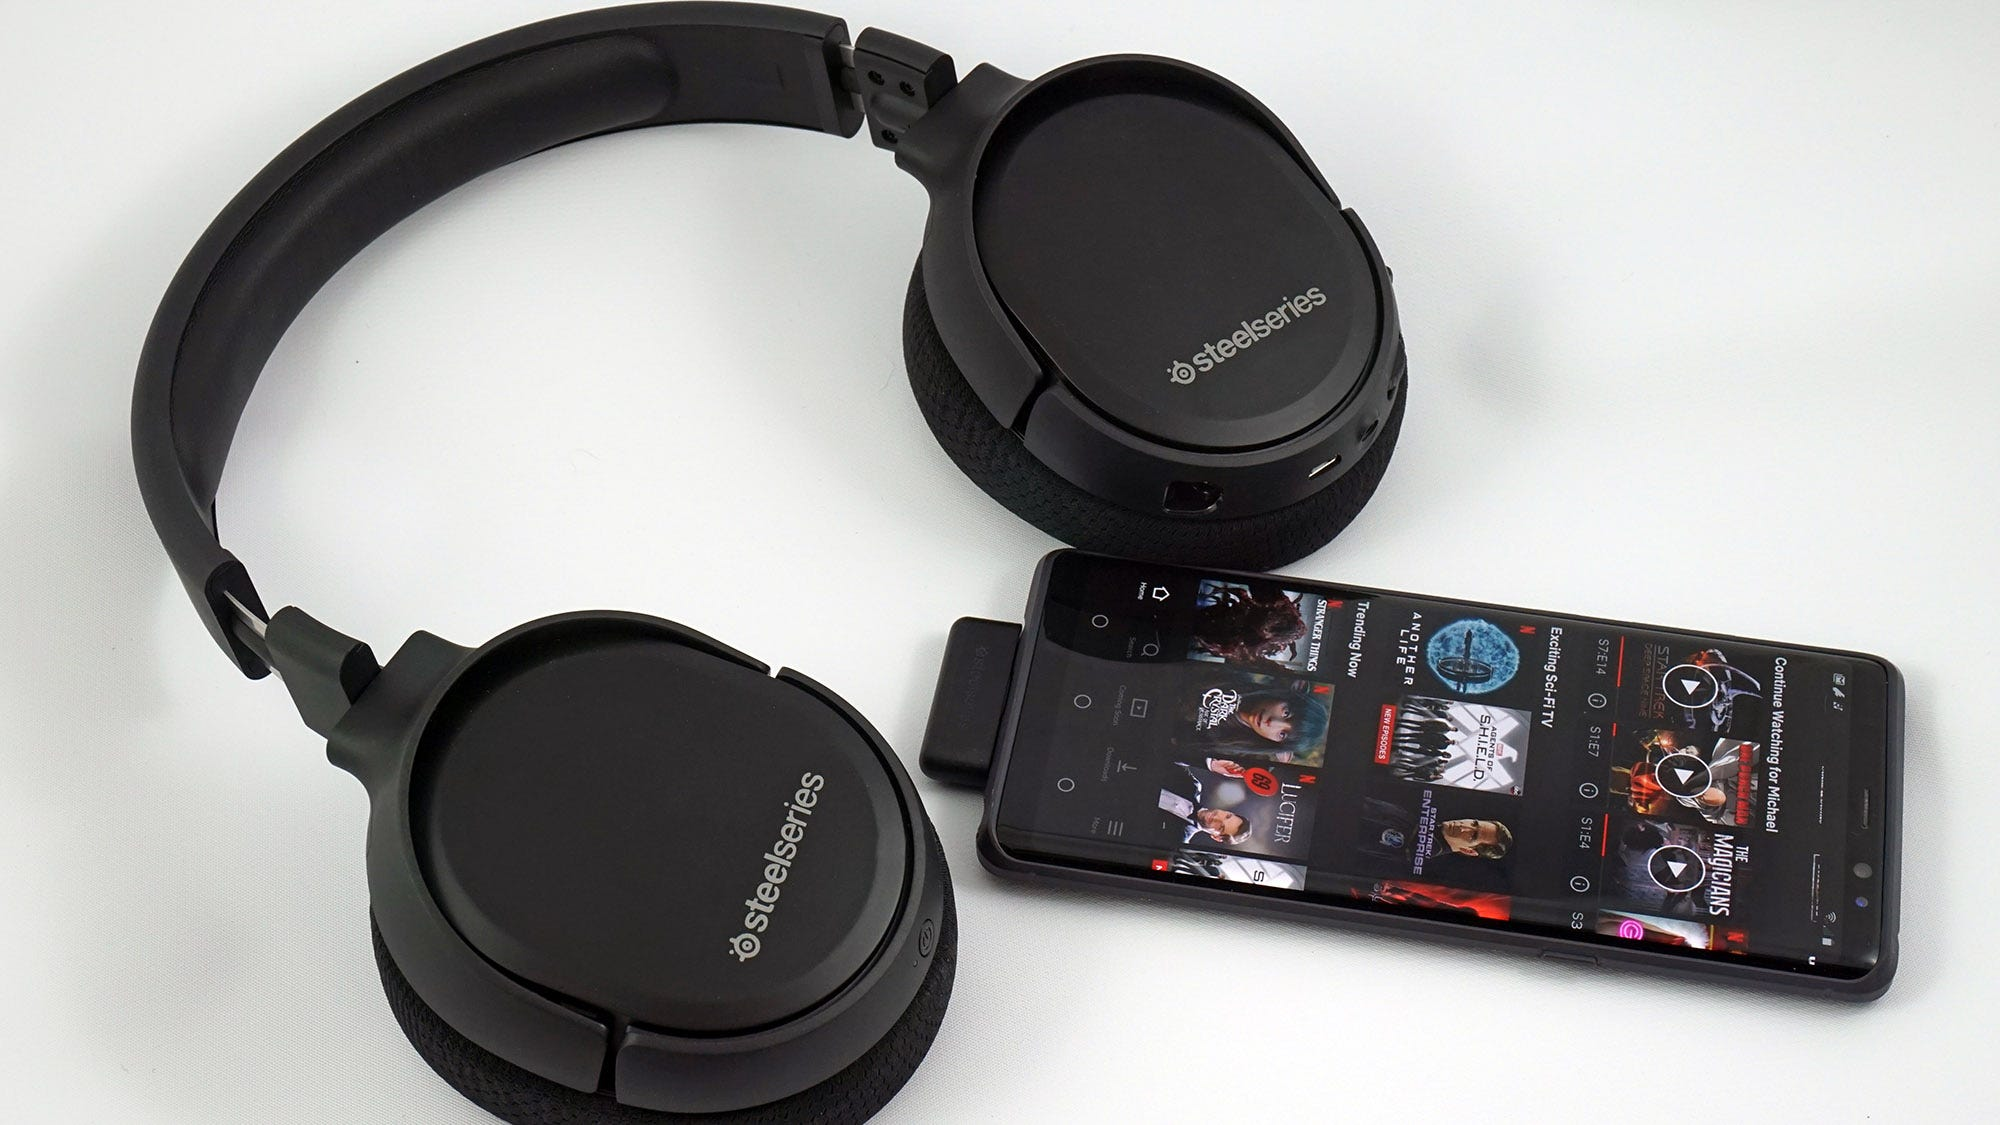 The SteelSeries Arctis 1 Wireless Headset next to a smartphone.